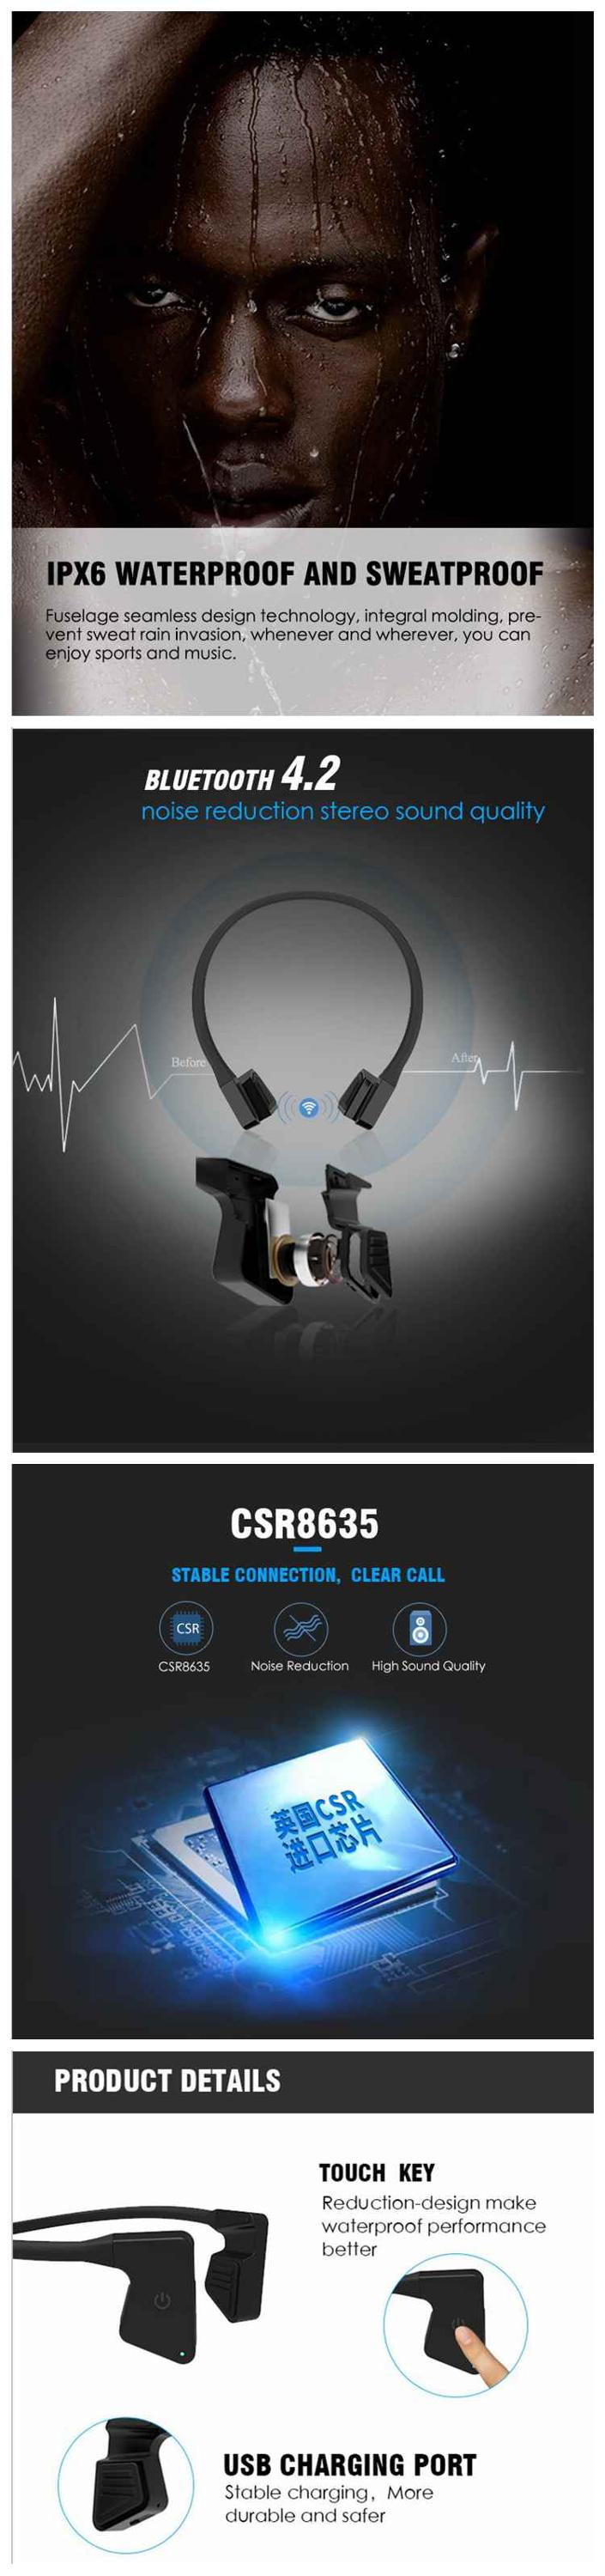 headphones for bone conduction new2019 shenzhen amazon wireless headset lipo battery phone accessories rack